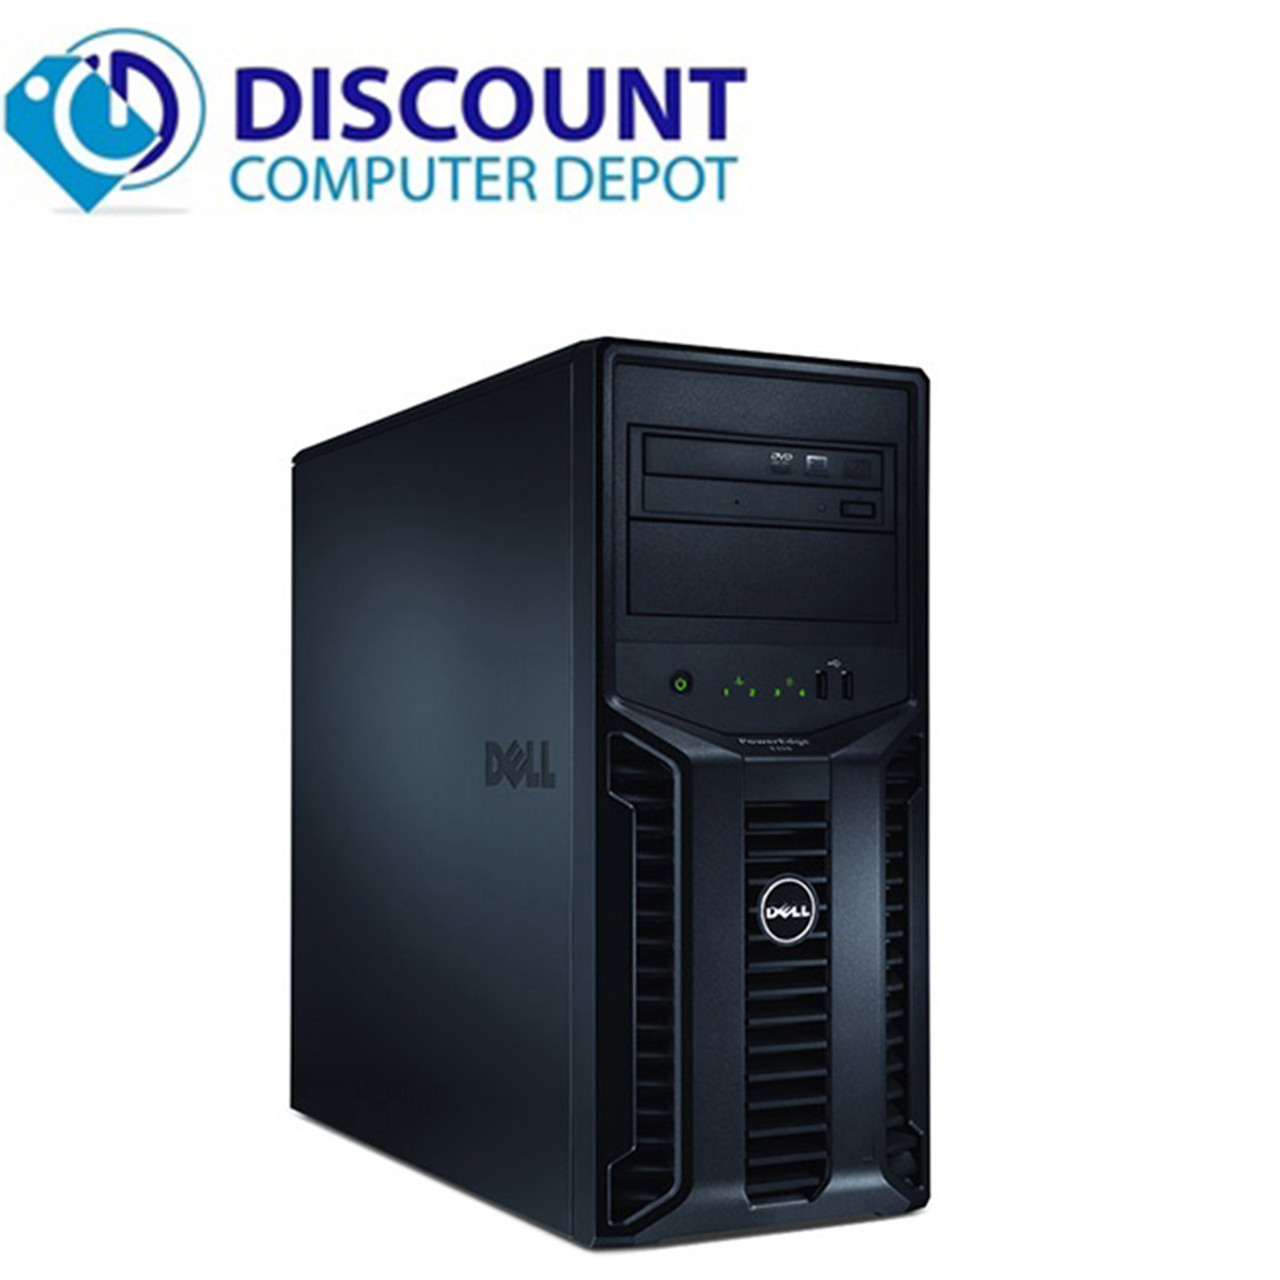 Dell Poweredge T110 Computer Server Tower PC 8GB 1TB Core i3 Windows 10 Pro  with Keyboard & Mouse and WIFI